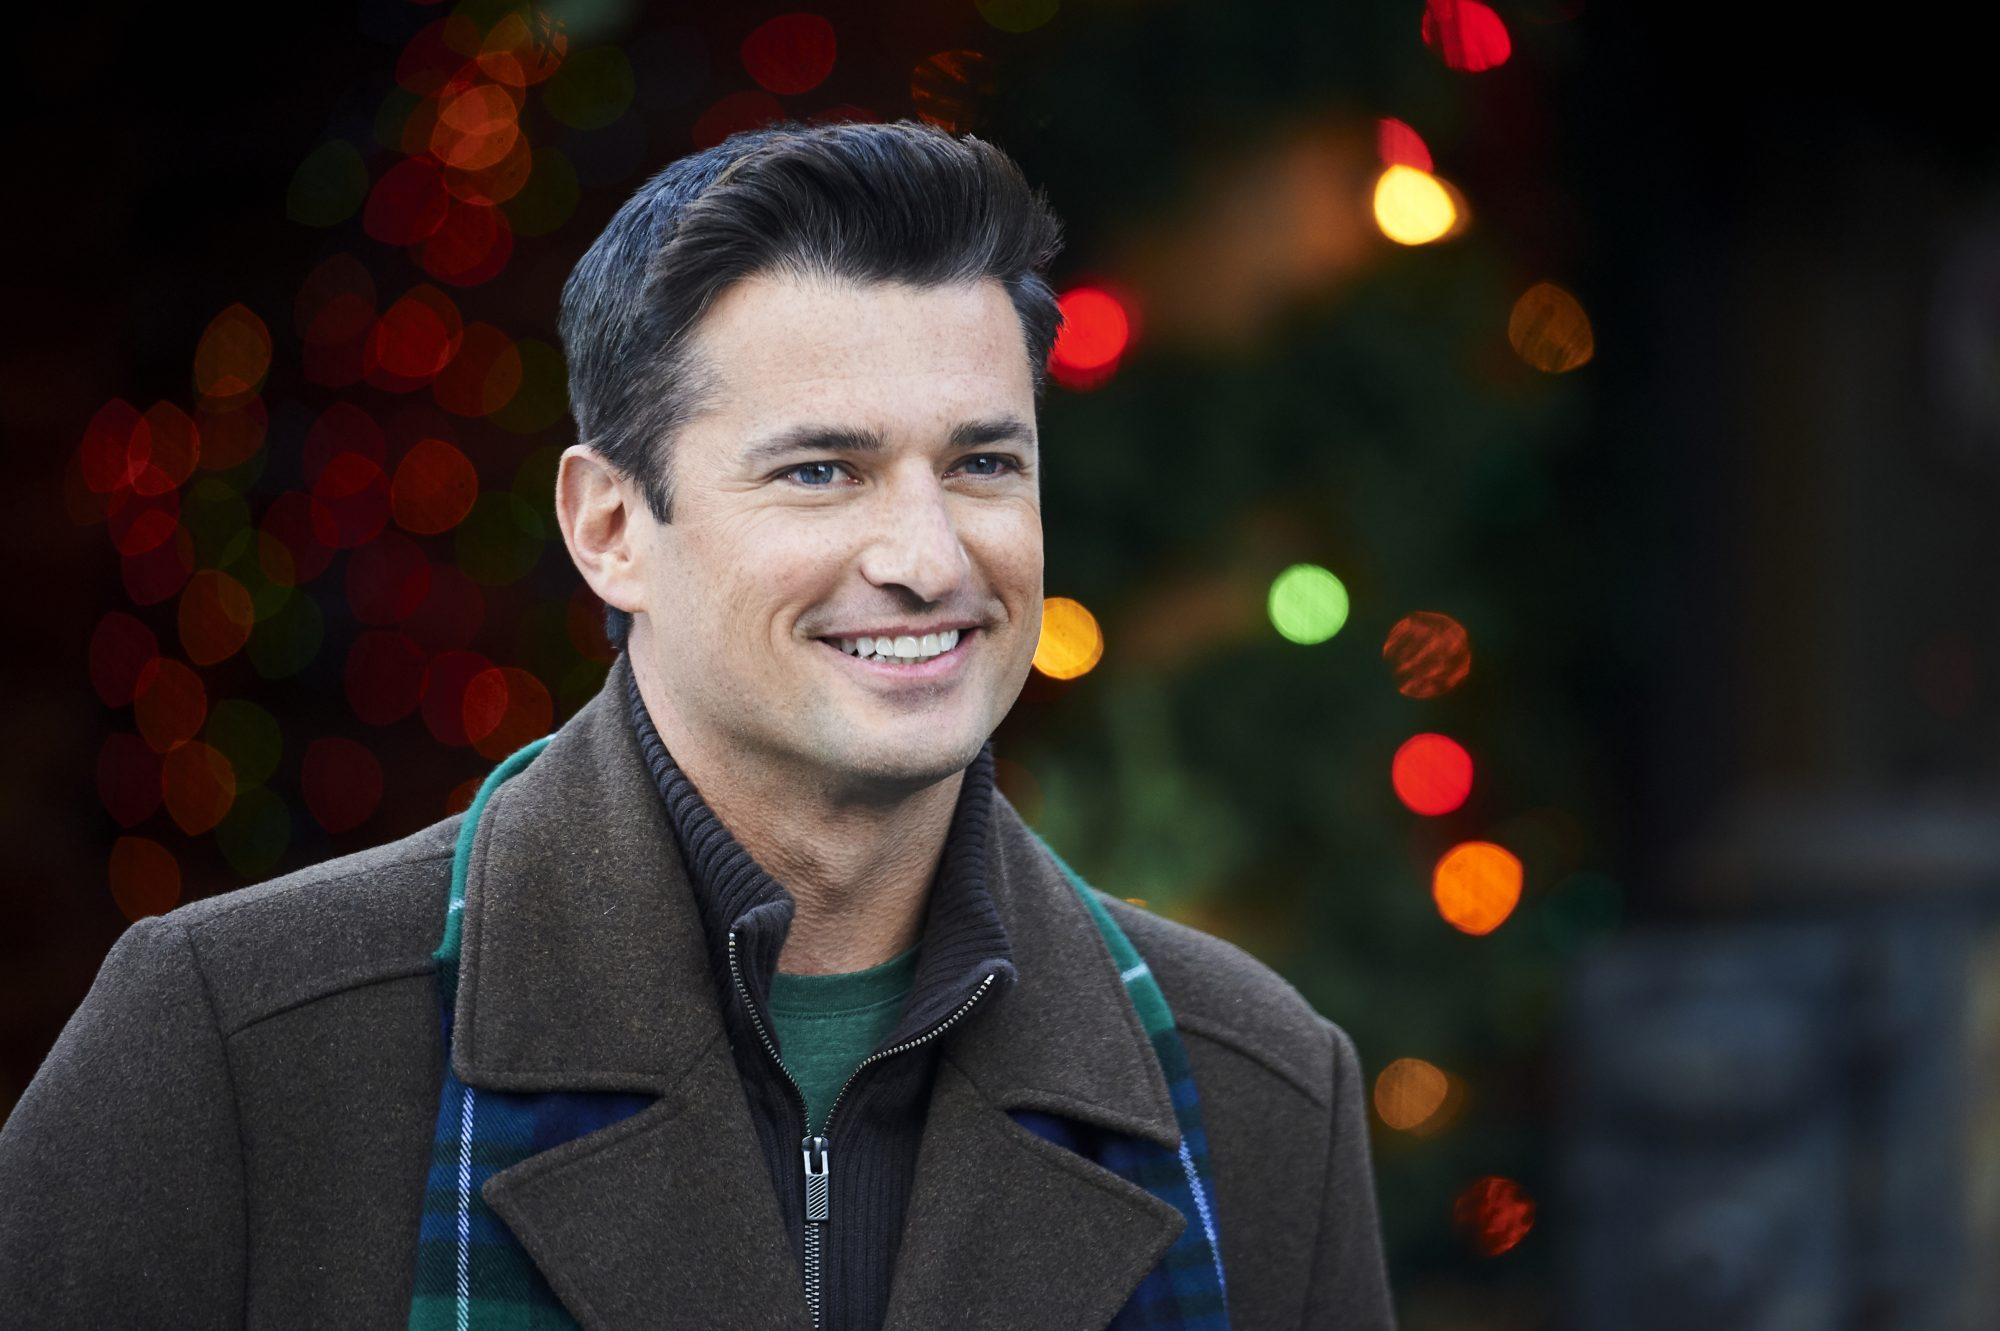 Hallmark's Wes Brown in Check Inn to Christmas